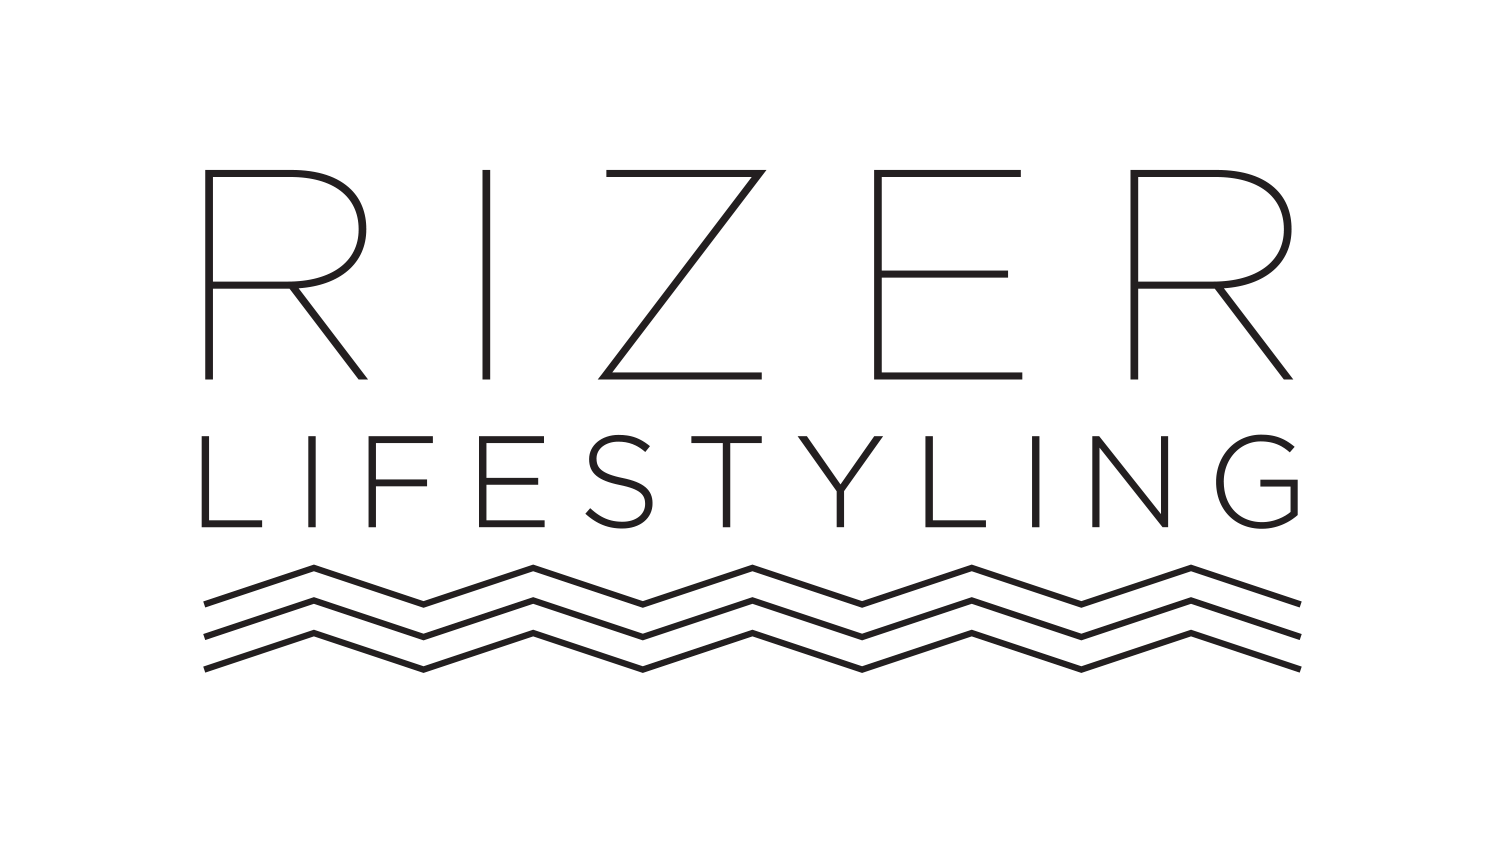 Rizer Lifestyling